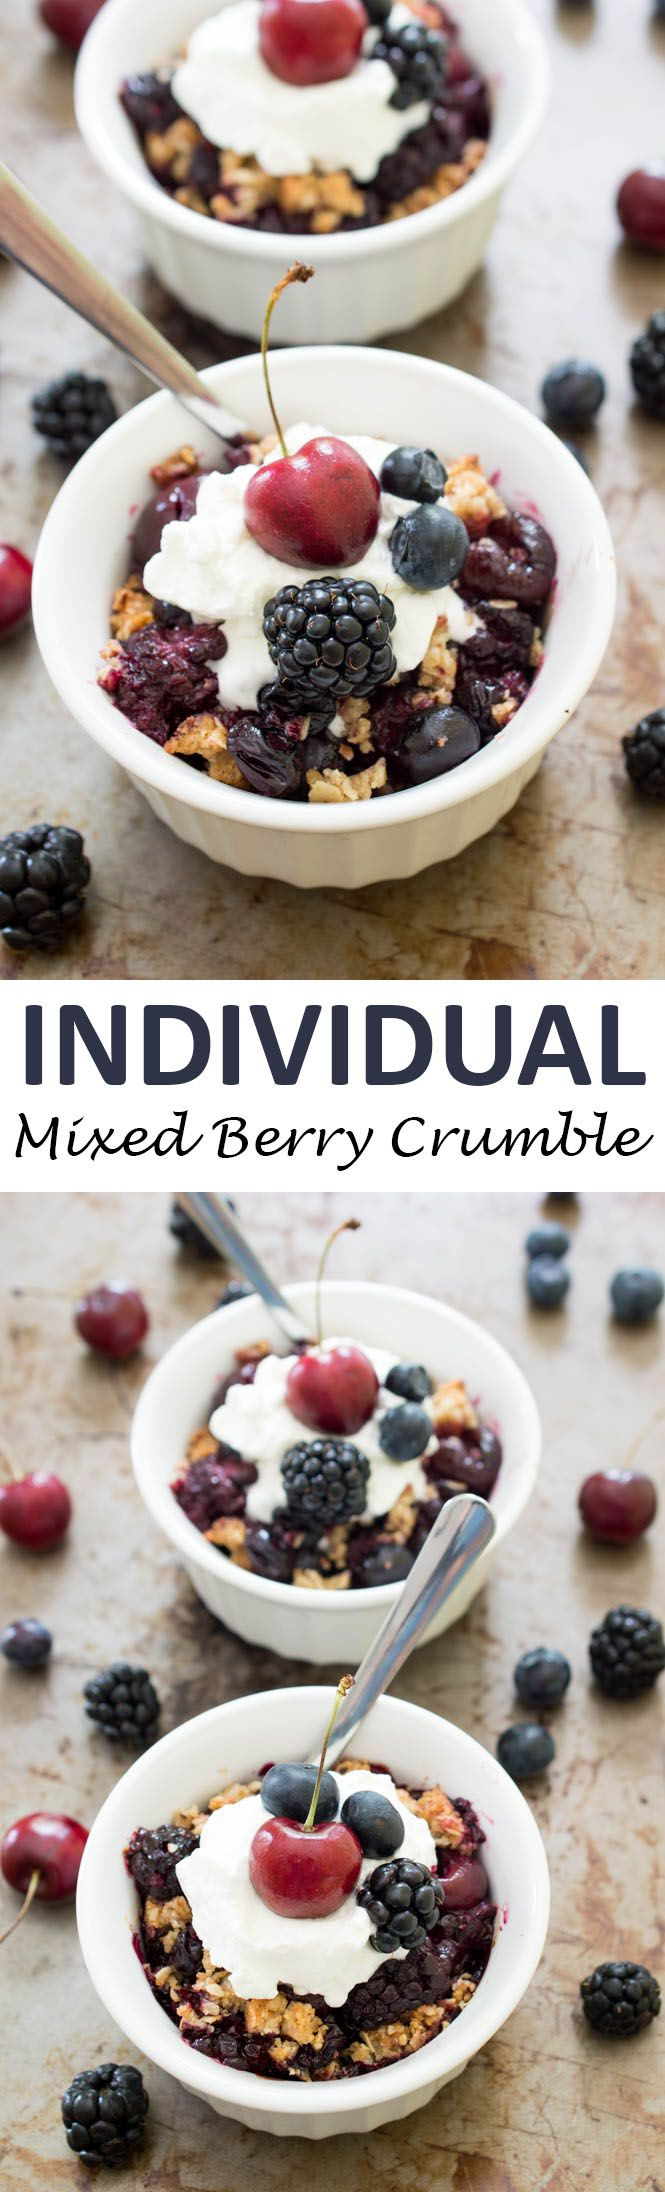 Individual Mixed Berry Crisp loaded with fresh cherries, blackberries and blueberries. A super easy and healthy dessert! | chefsavvy.com #recipe #crisp #berry